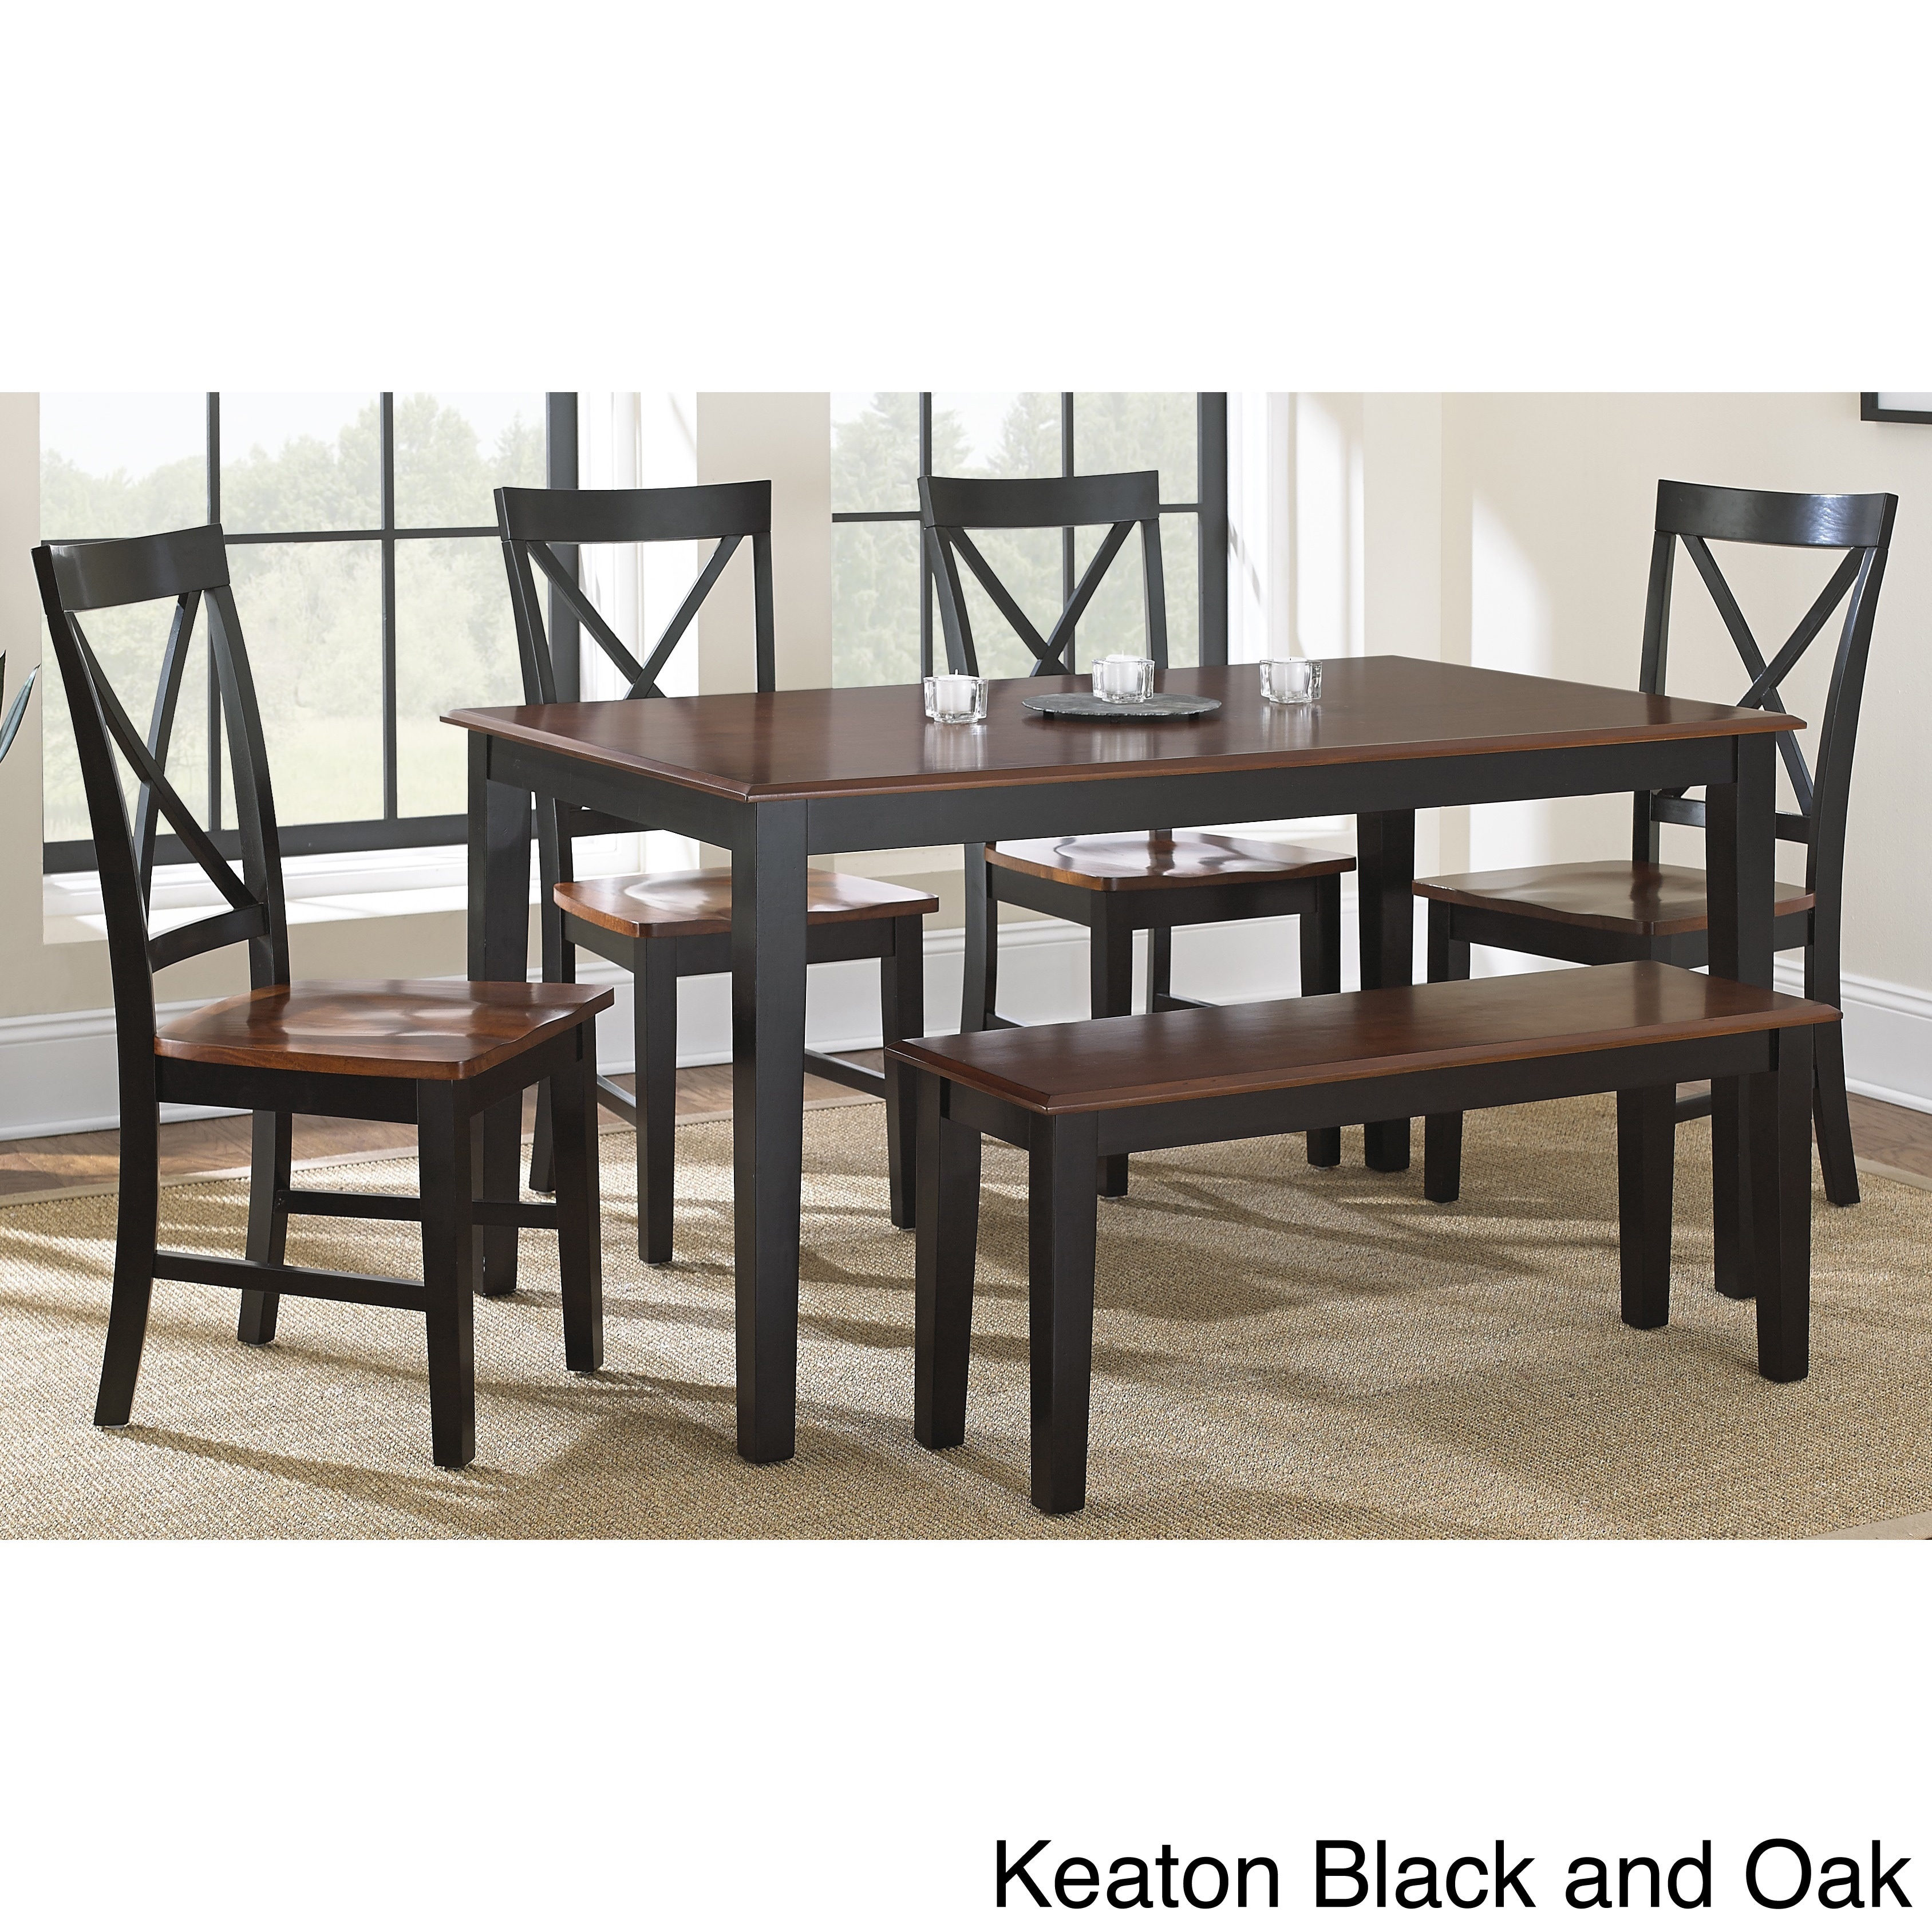 keaton dining sets overstock shopping big discounts on dining sets